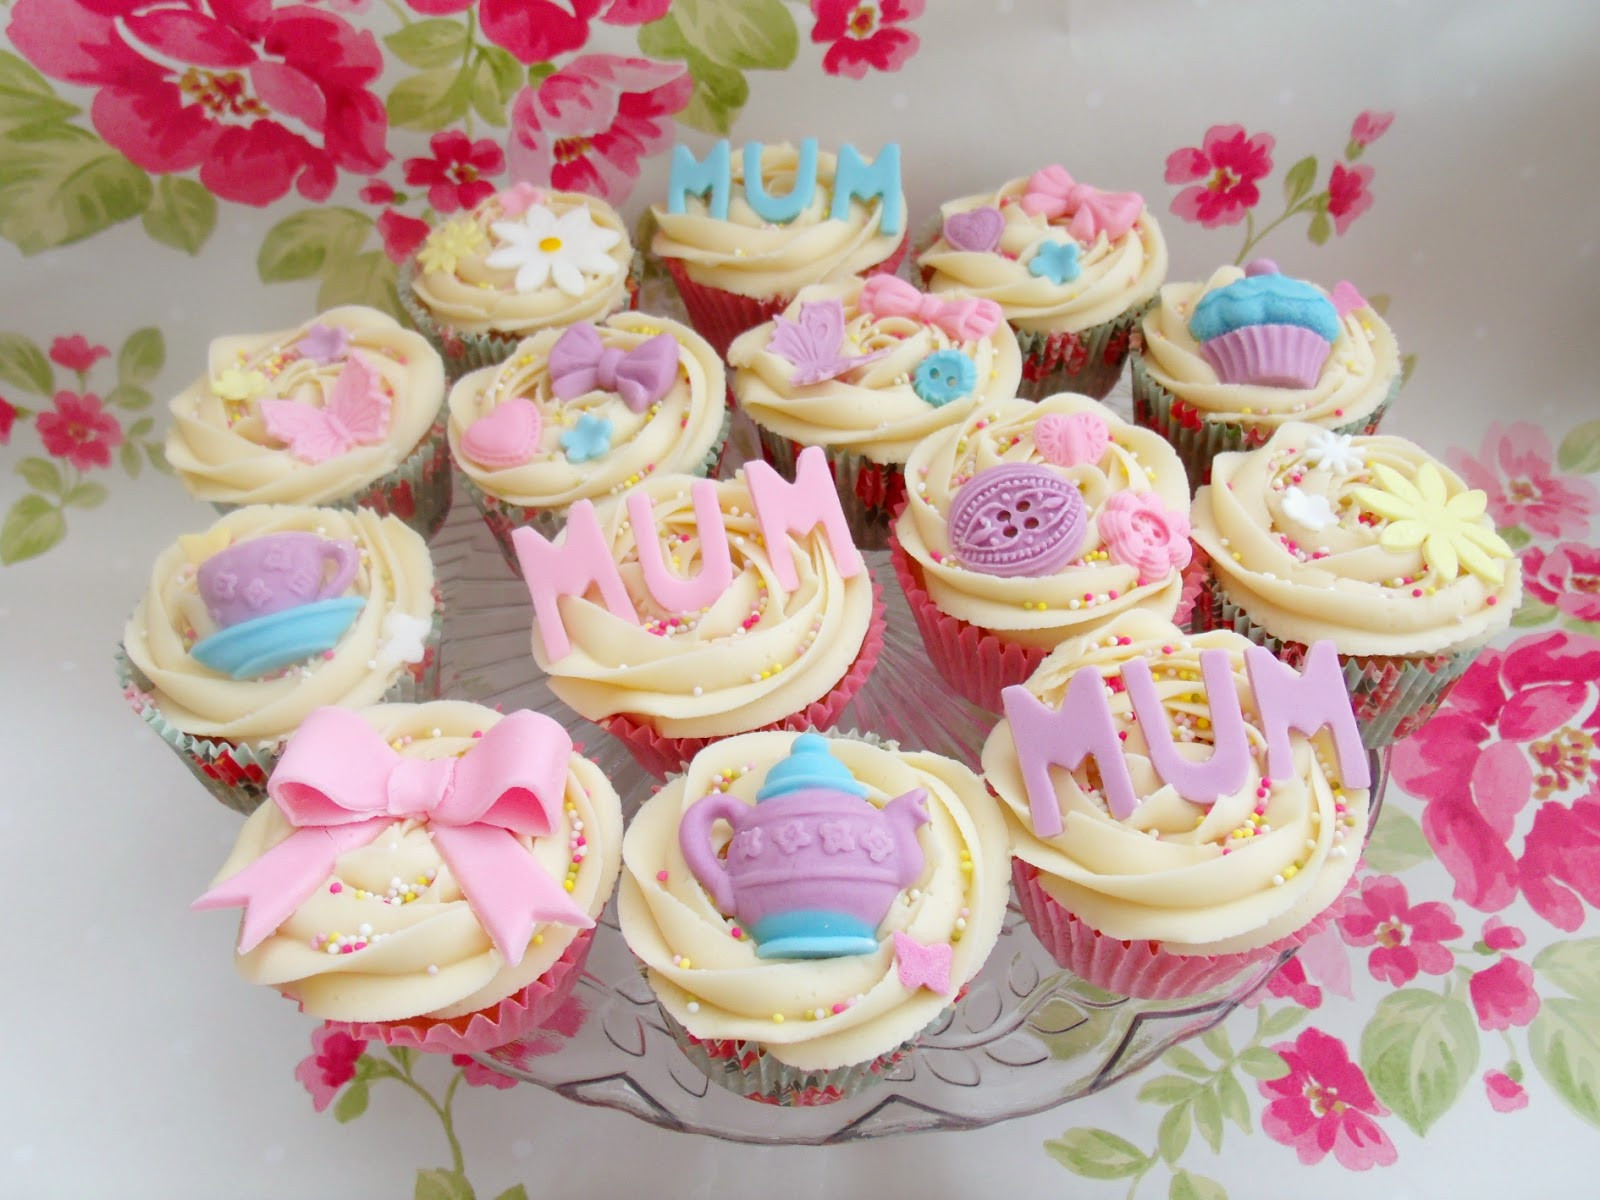 Mothers Day Cupcakes  Lemon Drizzle Cake & Mothers Day Cupcakes ♥